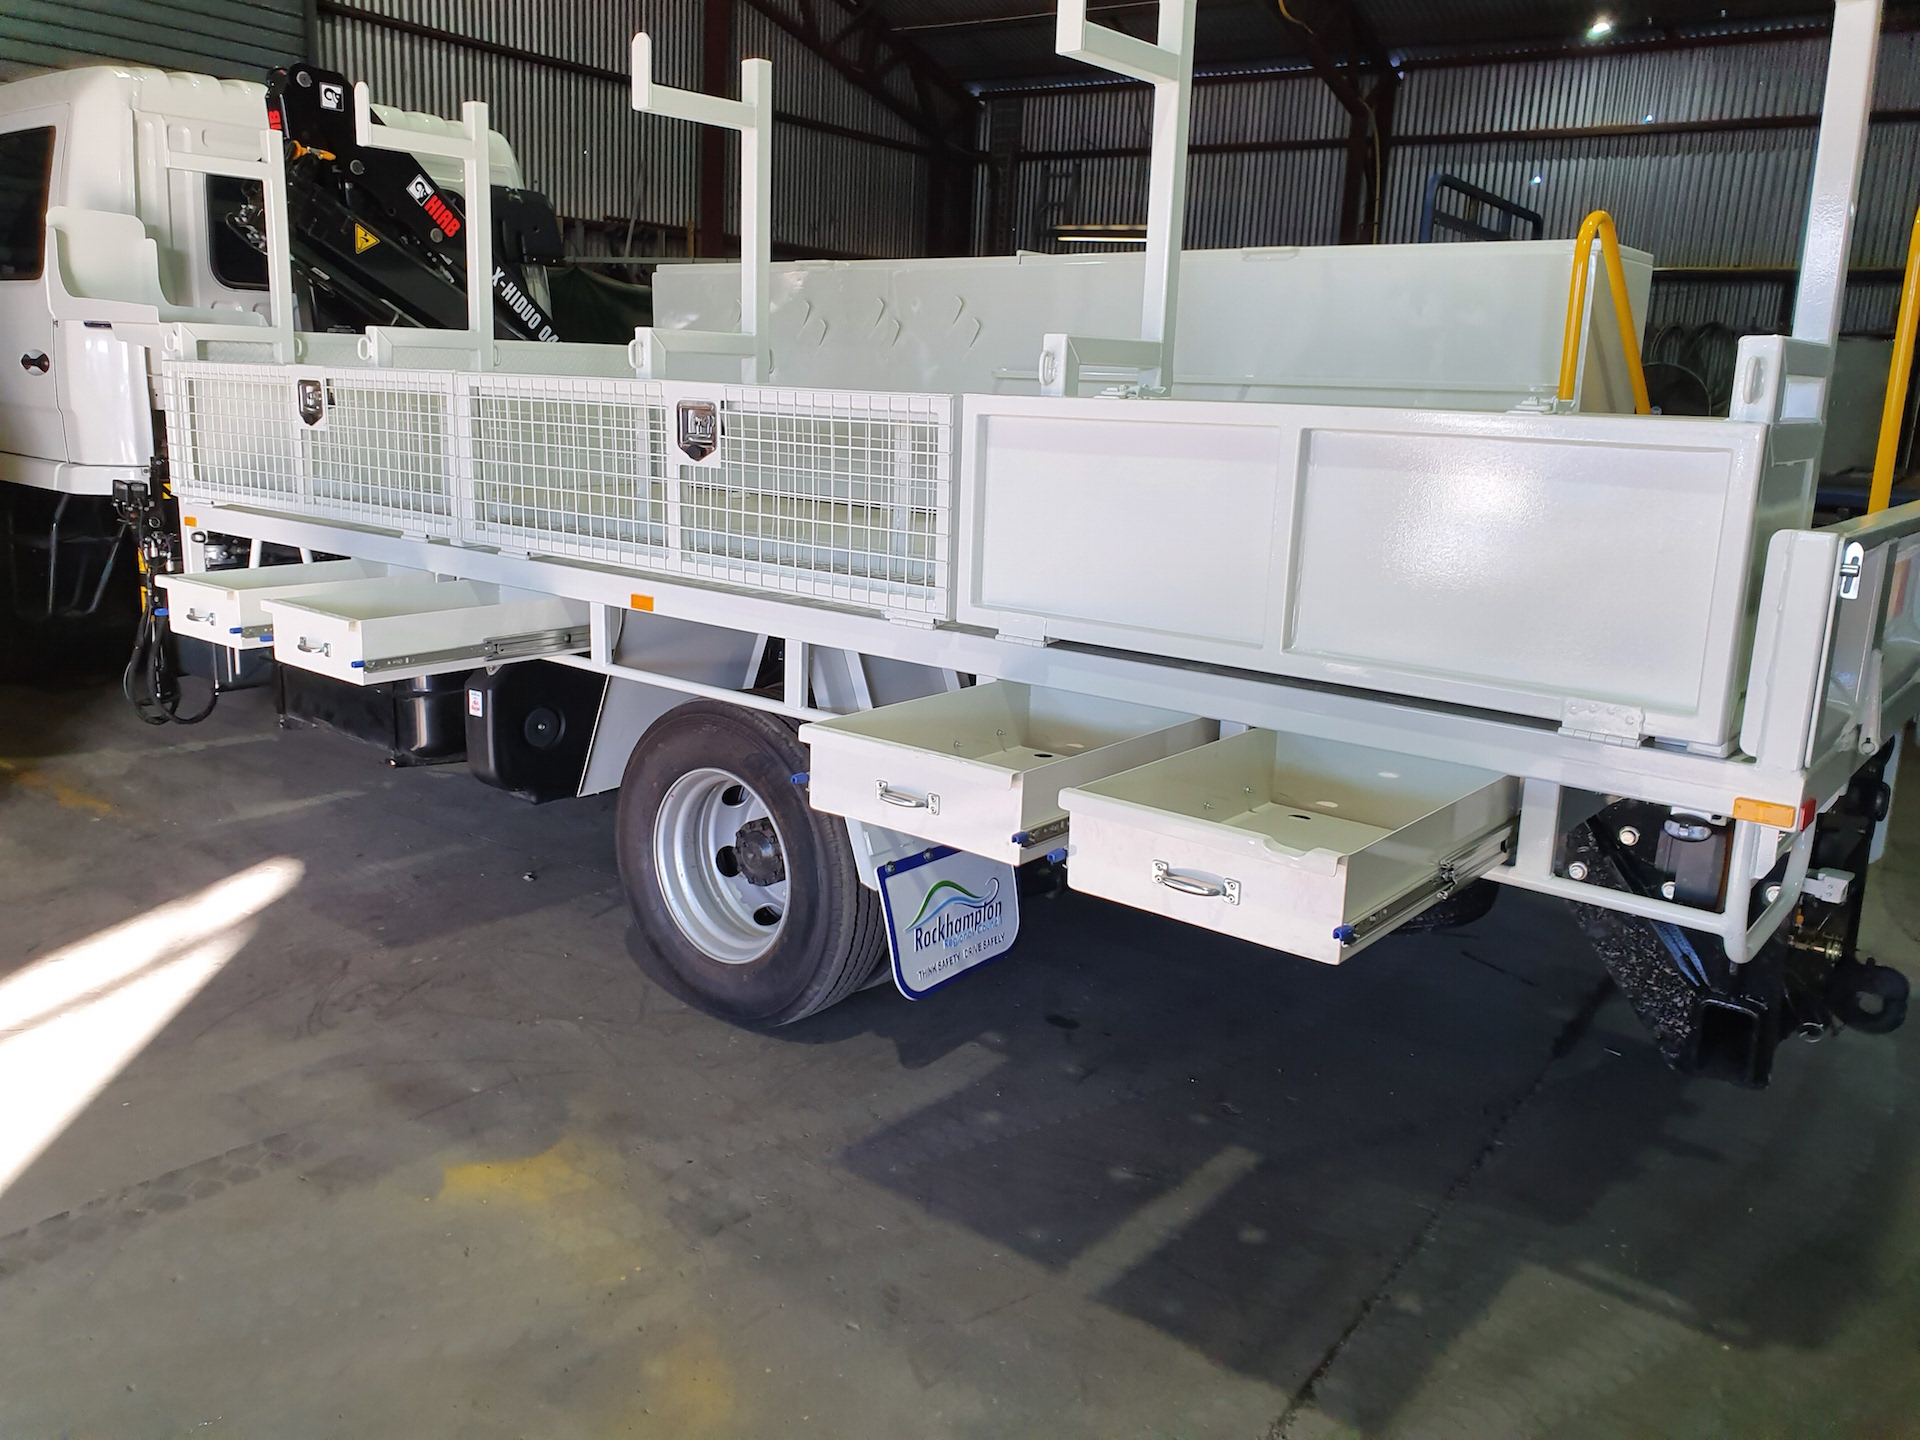 Concreter Truck Storage: Tray body dropside customised to suit toolboxes and storage for Concrete Work HIAB crane fitted